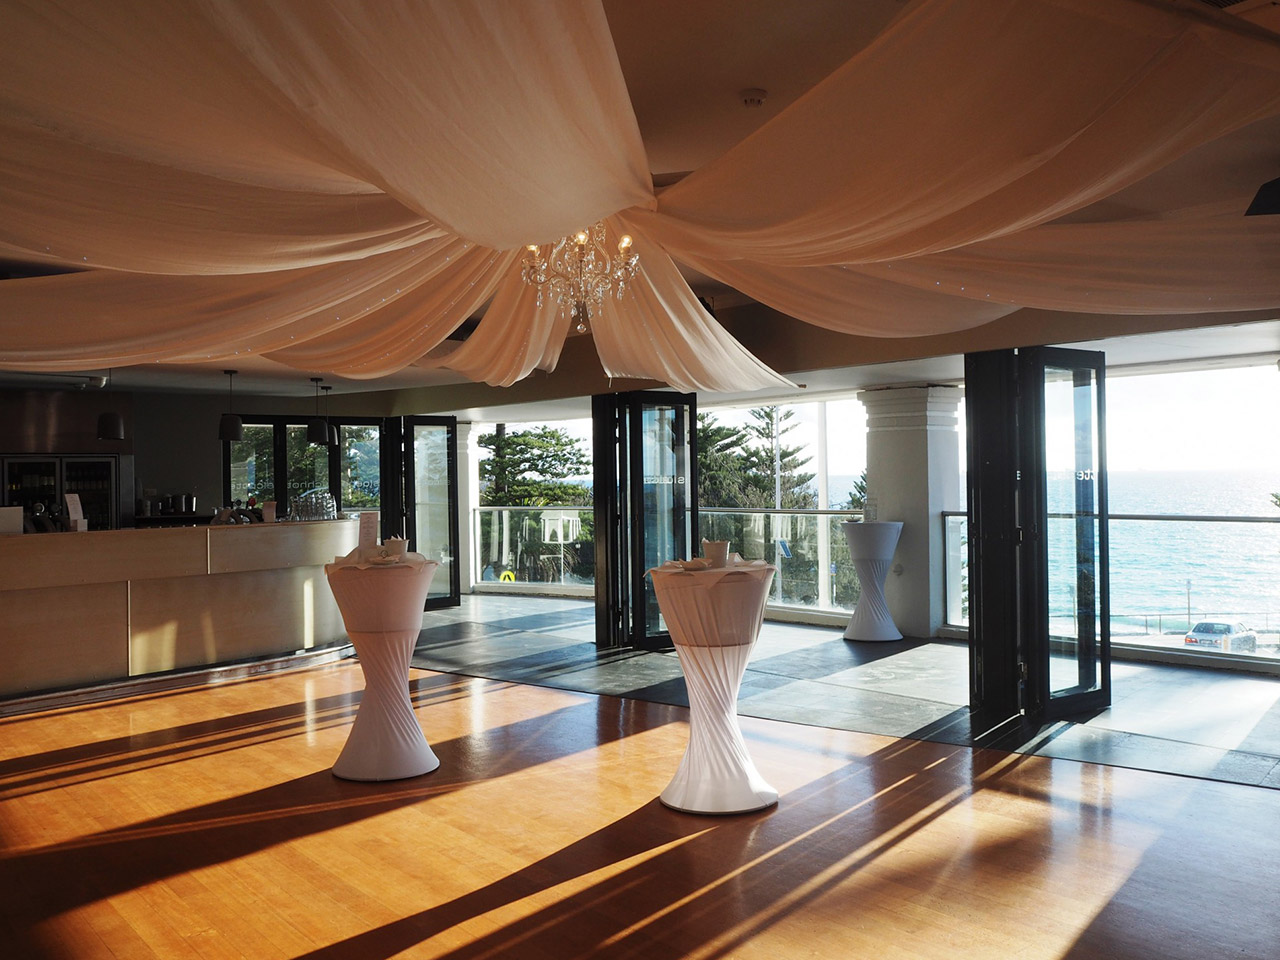 Inside The Function Room With Ceiling Curtains Draping And A Ocean View.